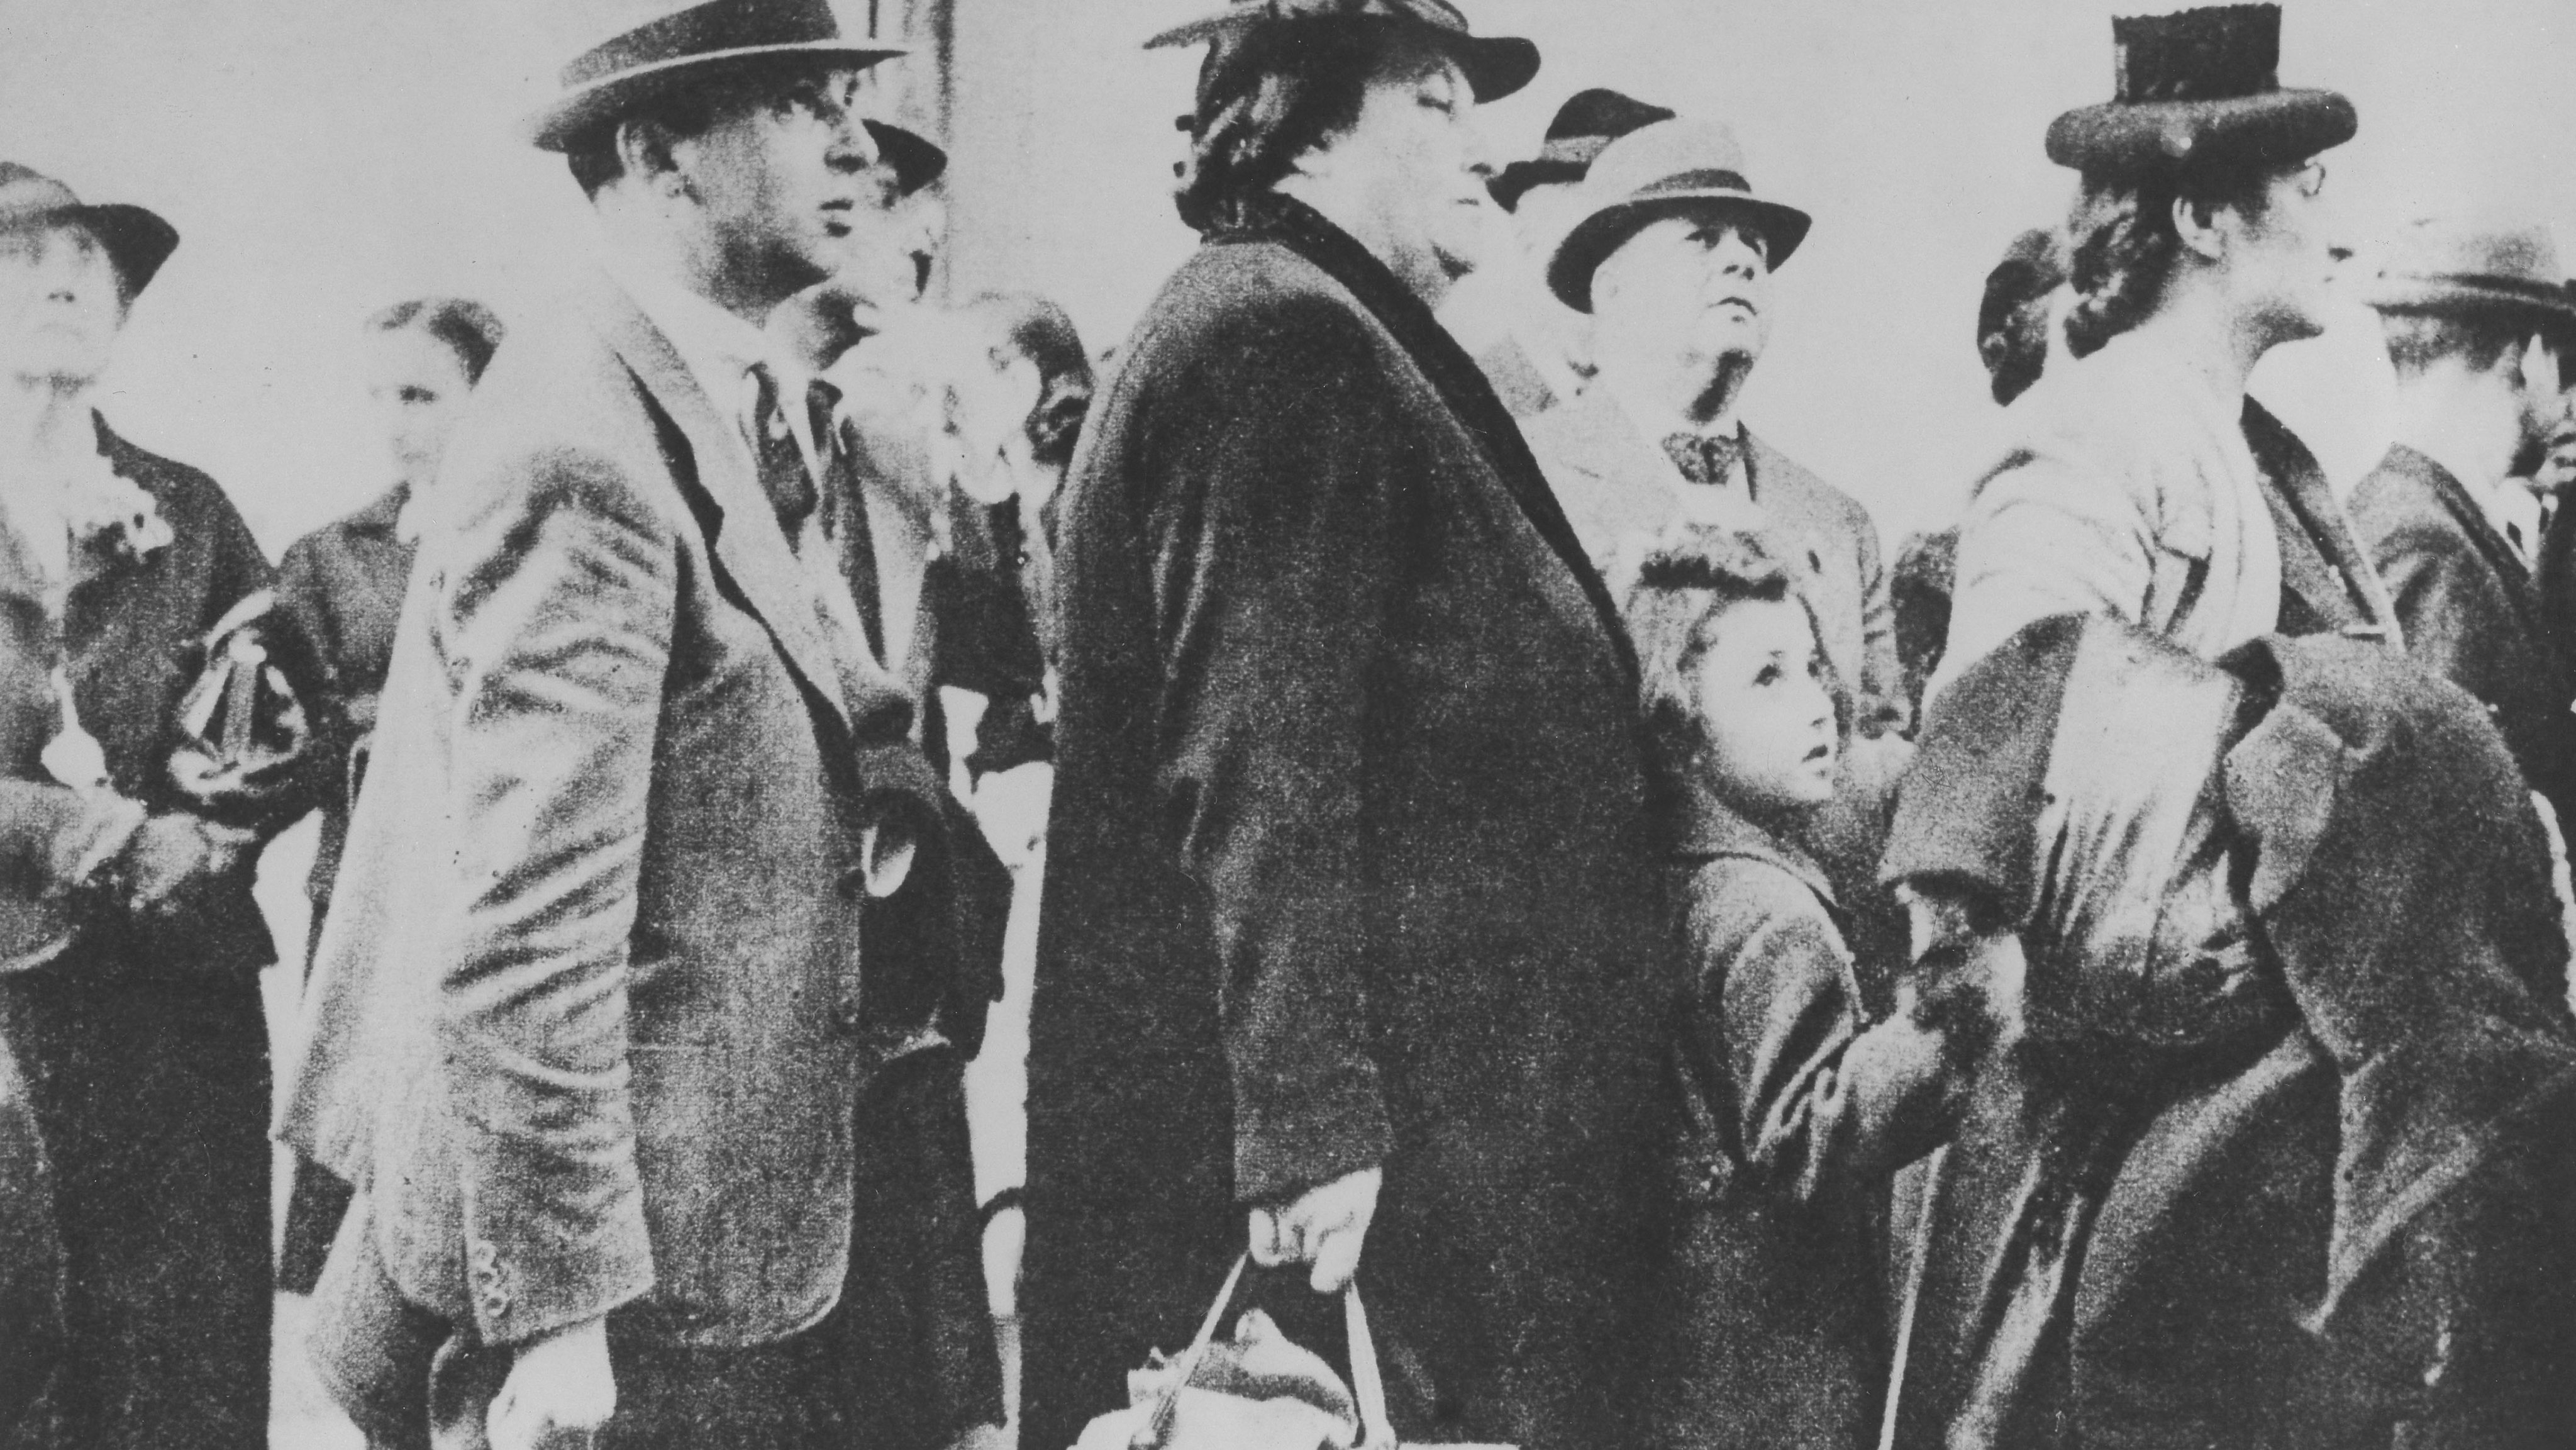 Germany, Third Reich - persecution of Jews 1939-45, emigration Embarkation of refugees in Lisbon